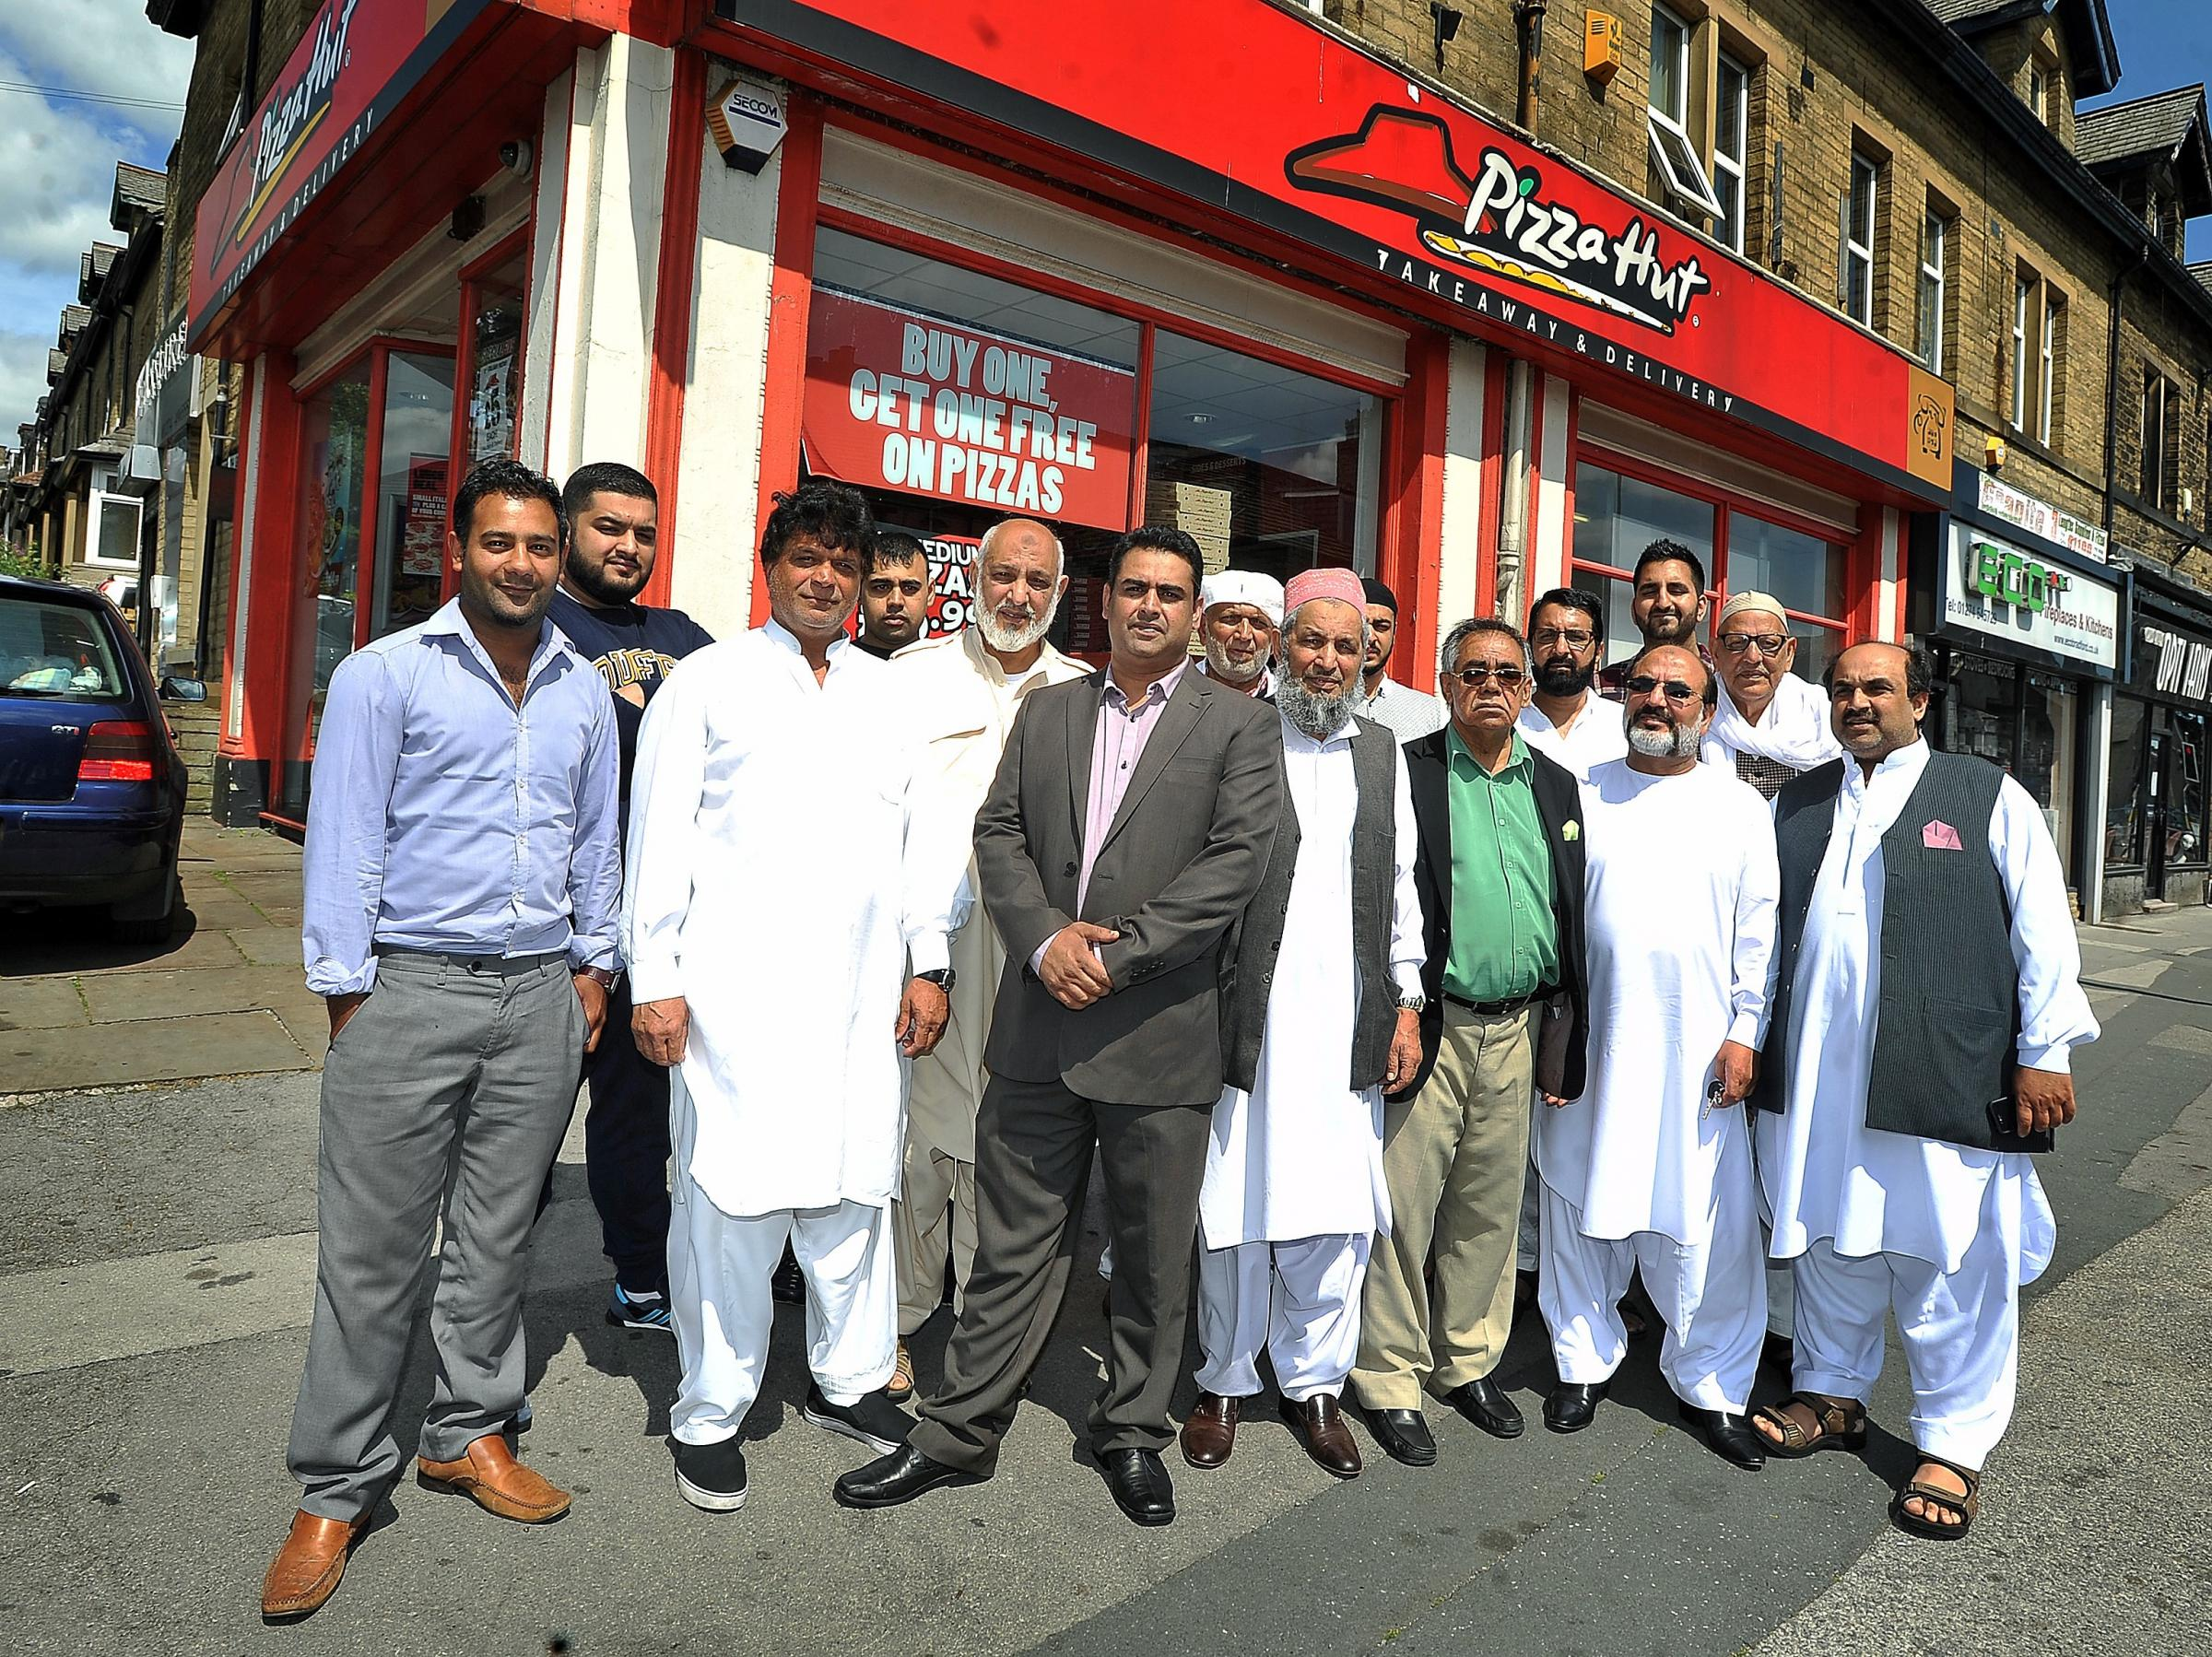 Controversial Plan To Open Bookmakers Shop In Bradford